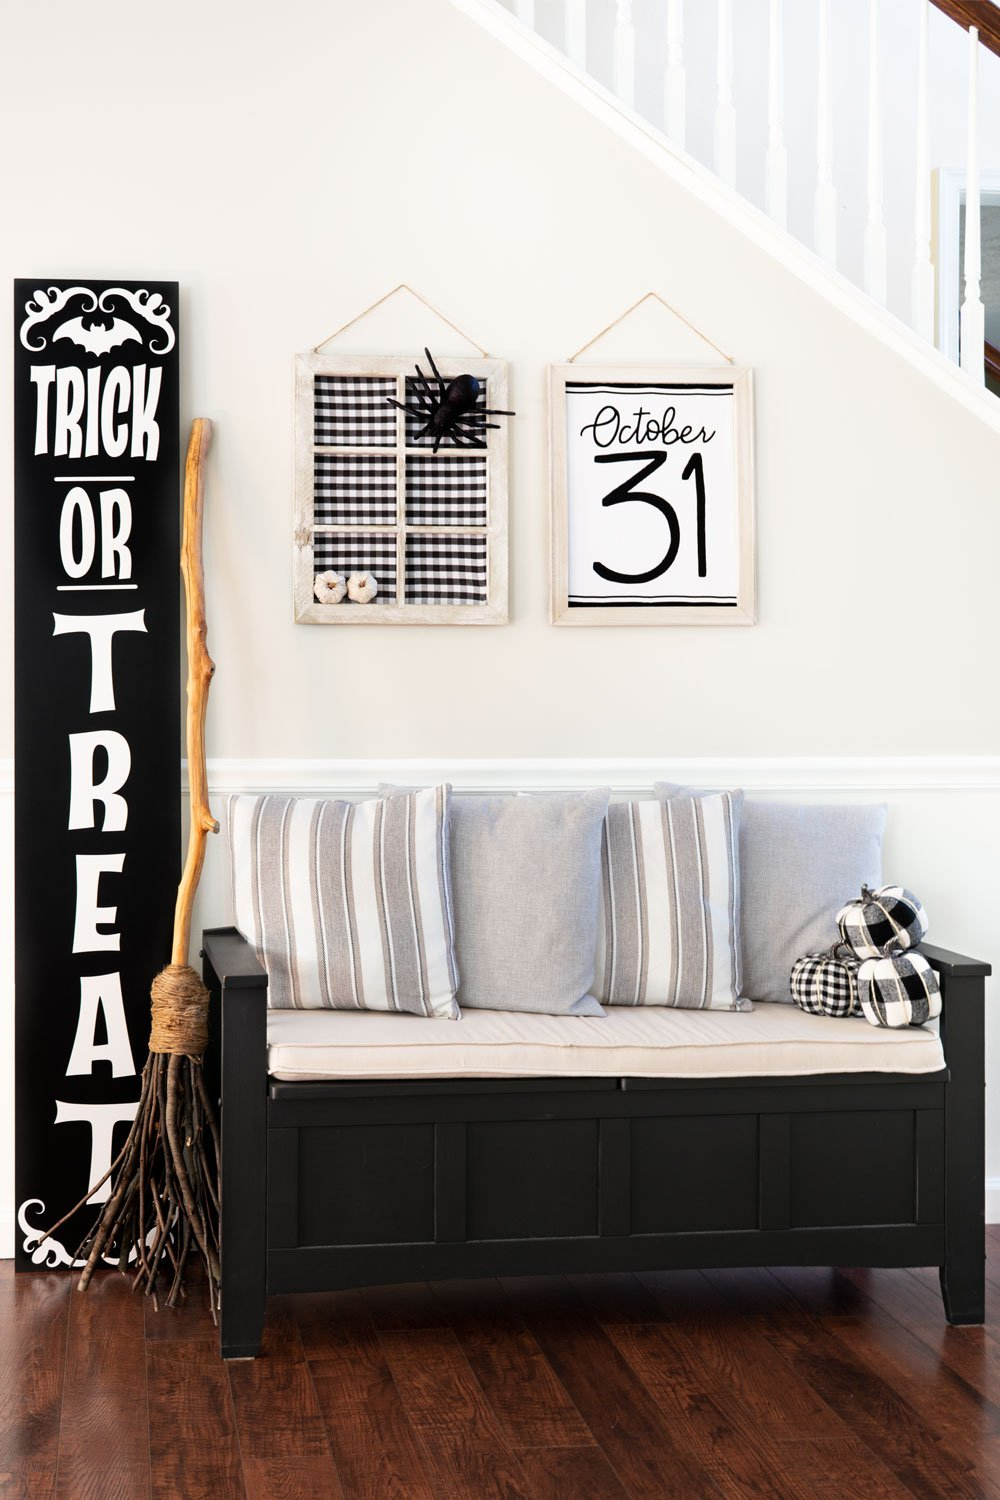 Trick or Treat Hanging Sign House Wall Door Decor Halloween